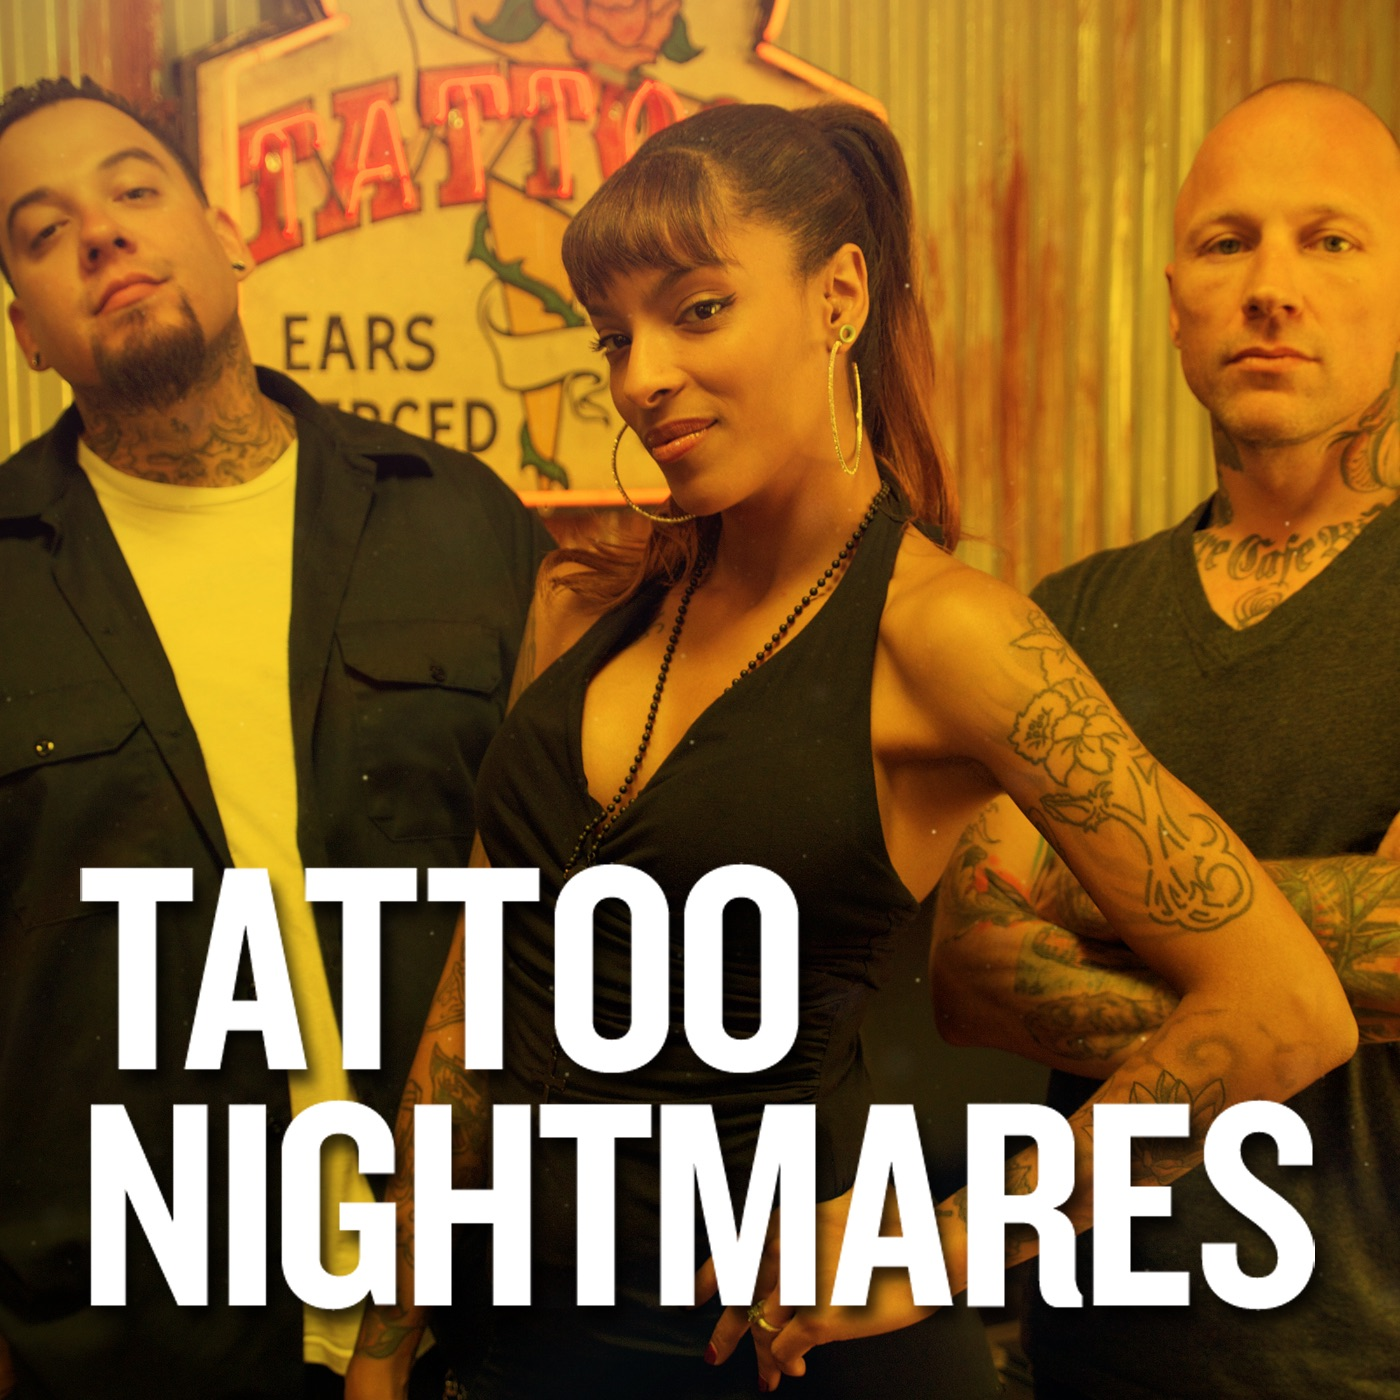 Tattoo nightmares season 1 on itunes for Tattoo nightmares shop appointment with jasmine